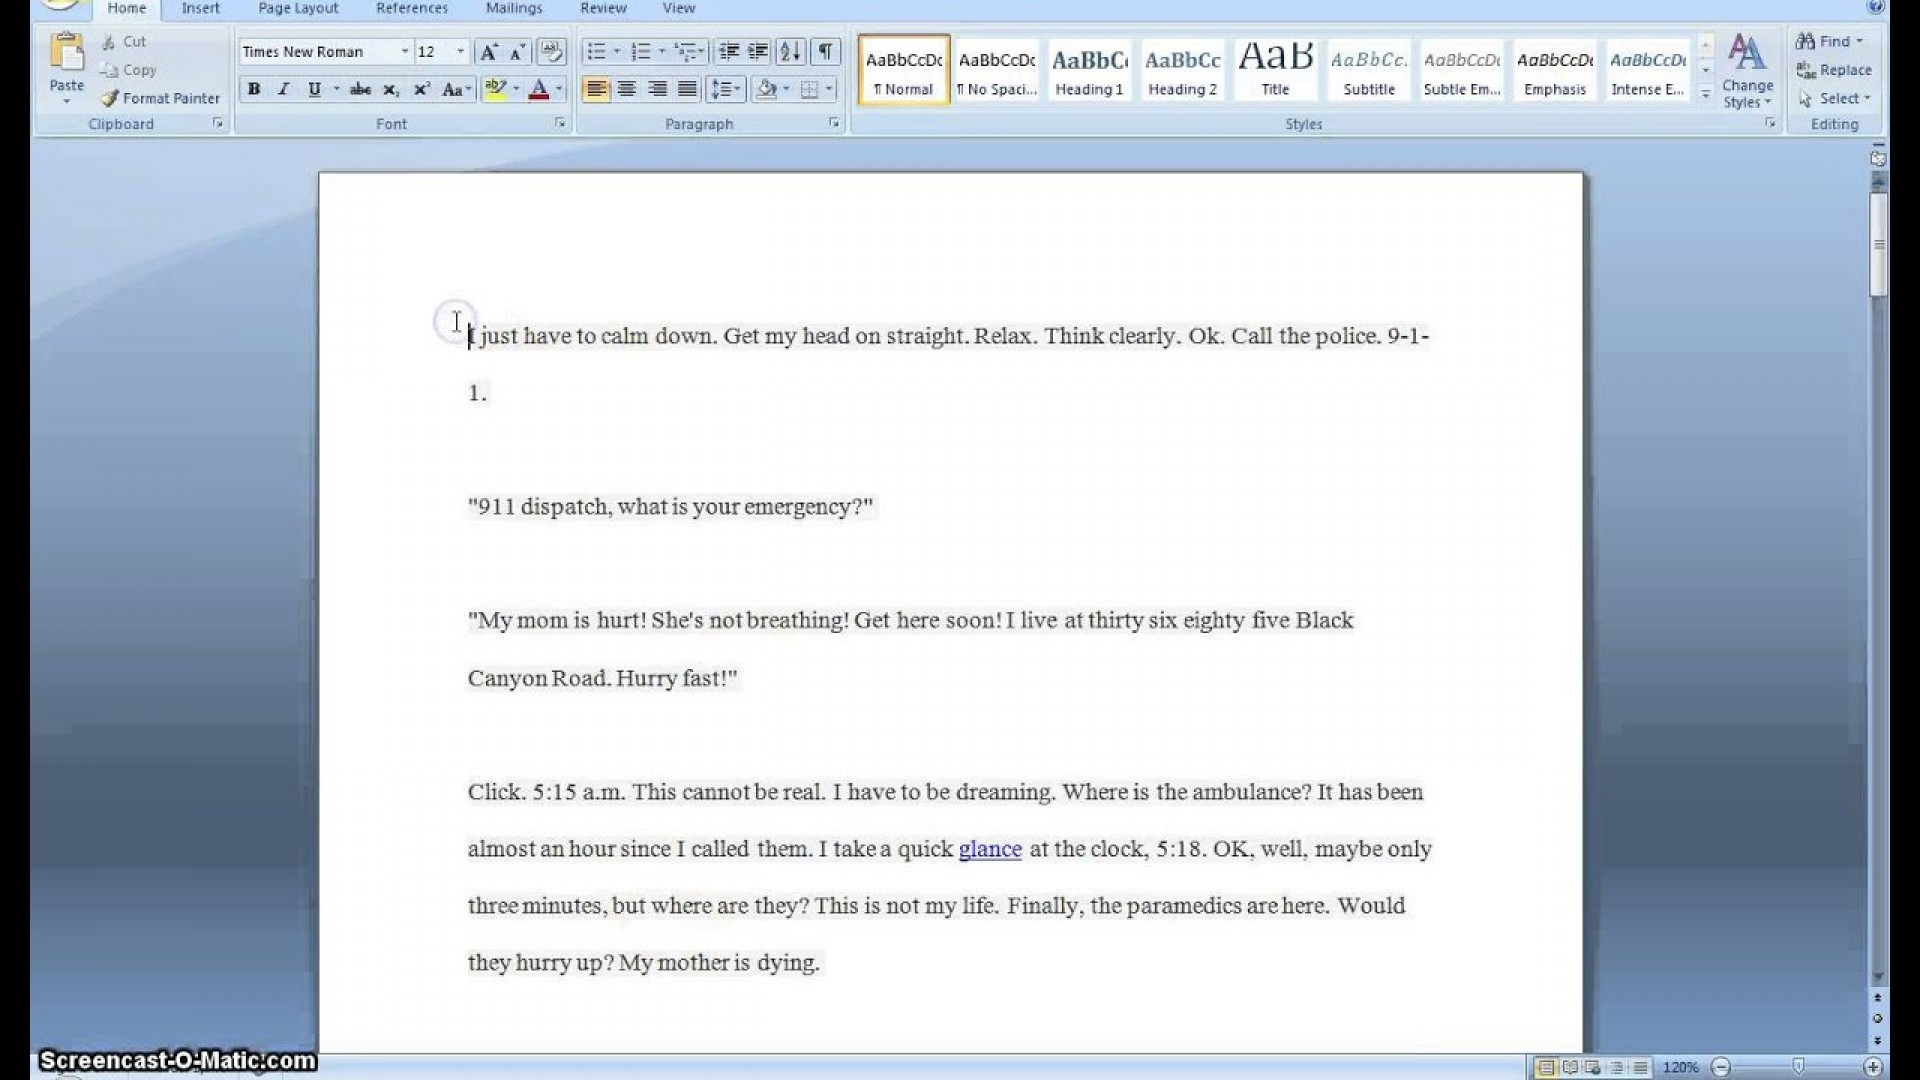 005 Essay Example Maxresdefault How To Make Look Exceptional Longer Period Your Trick An On Google Docs 1920